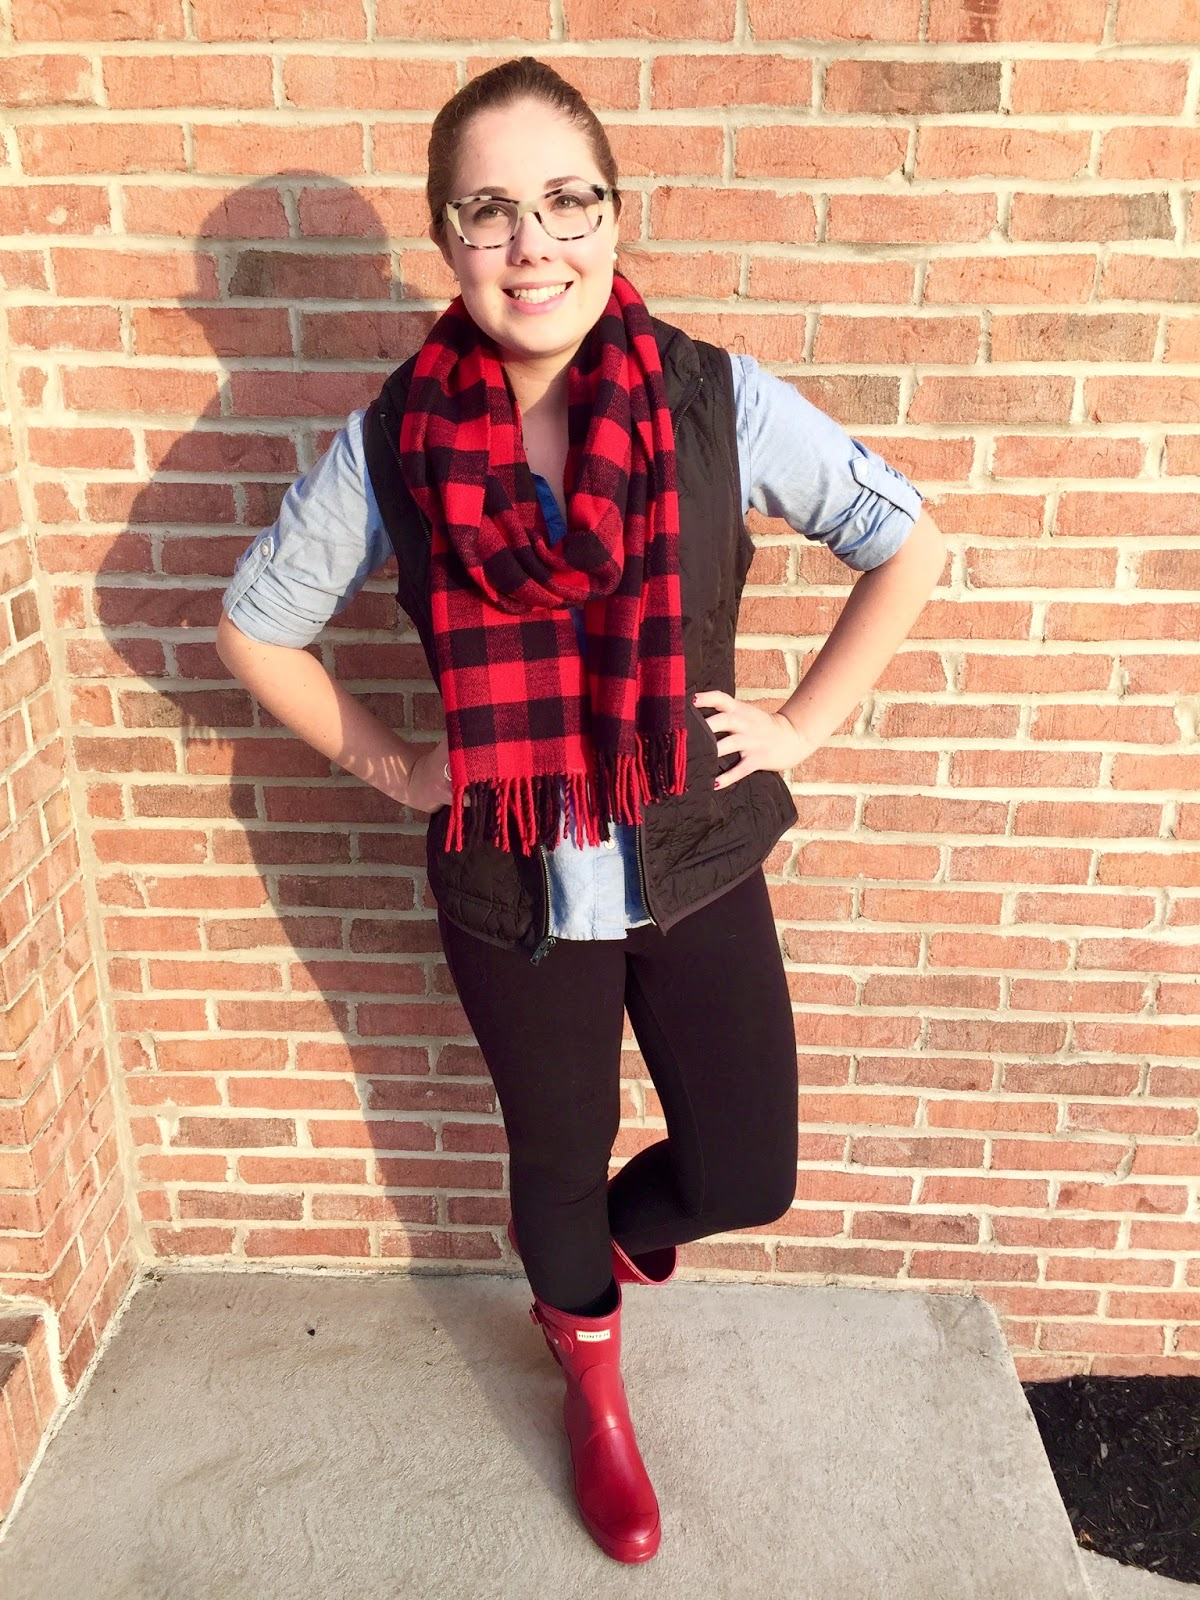 a99db925c641 Button Down: Tommy Hilfiger (similar) / Vest: Old Navy / Leggings: Aerie  (similar) / Scarf: J Crew Factory / Boots: Hunters / Earrings: Miadora